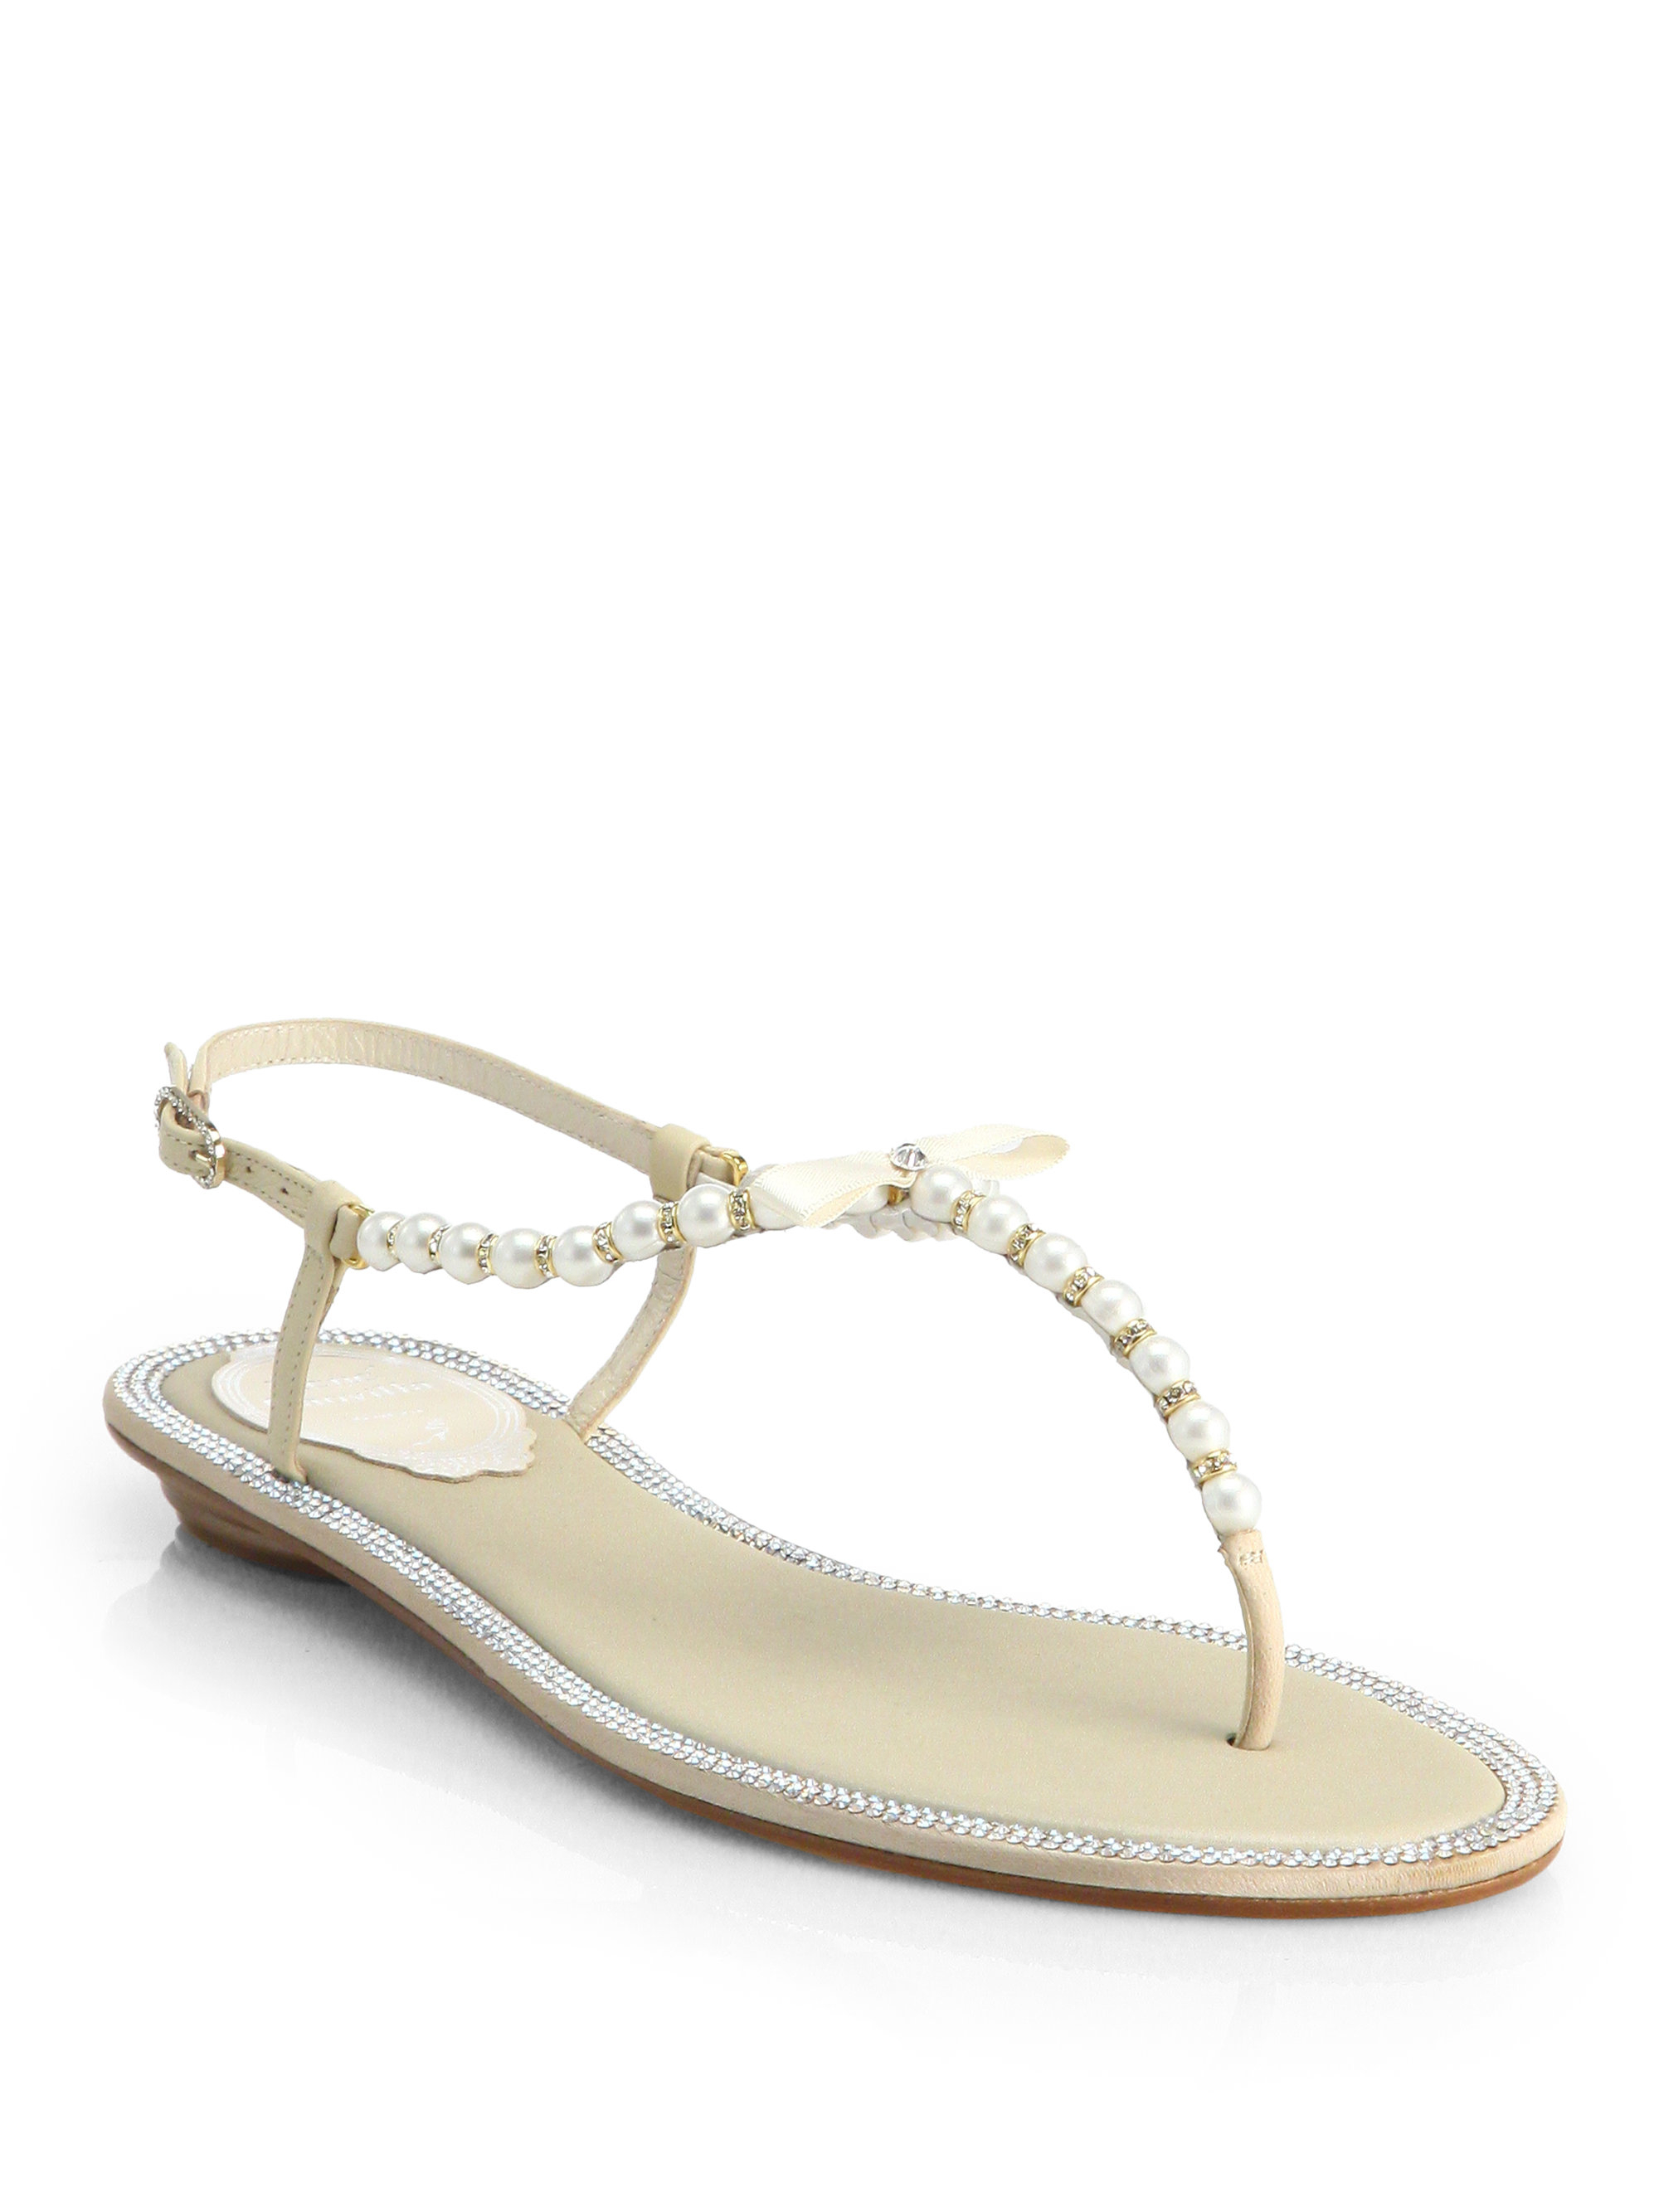 René Caovilla Pearl-Embellished Slingback Sandals ebay for sale for nice online cheap price low shipping fee cheap sale browse discount with credit card BLUJO1eMYm